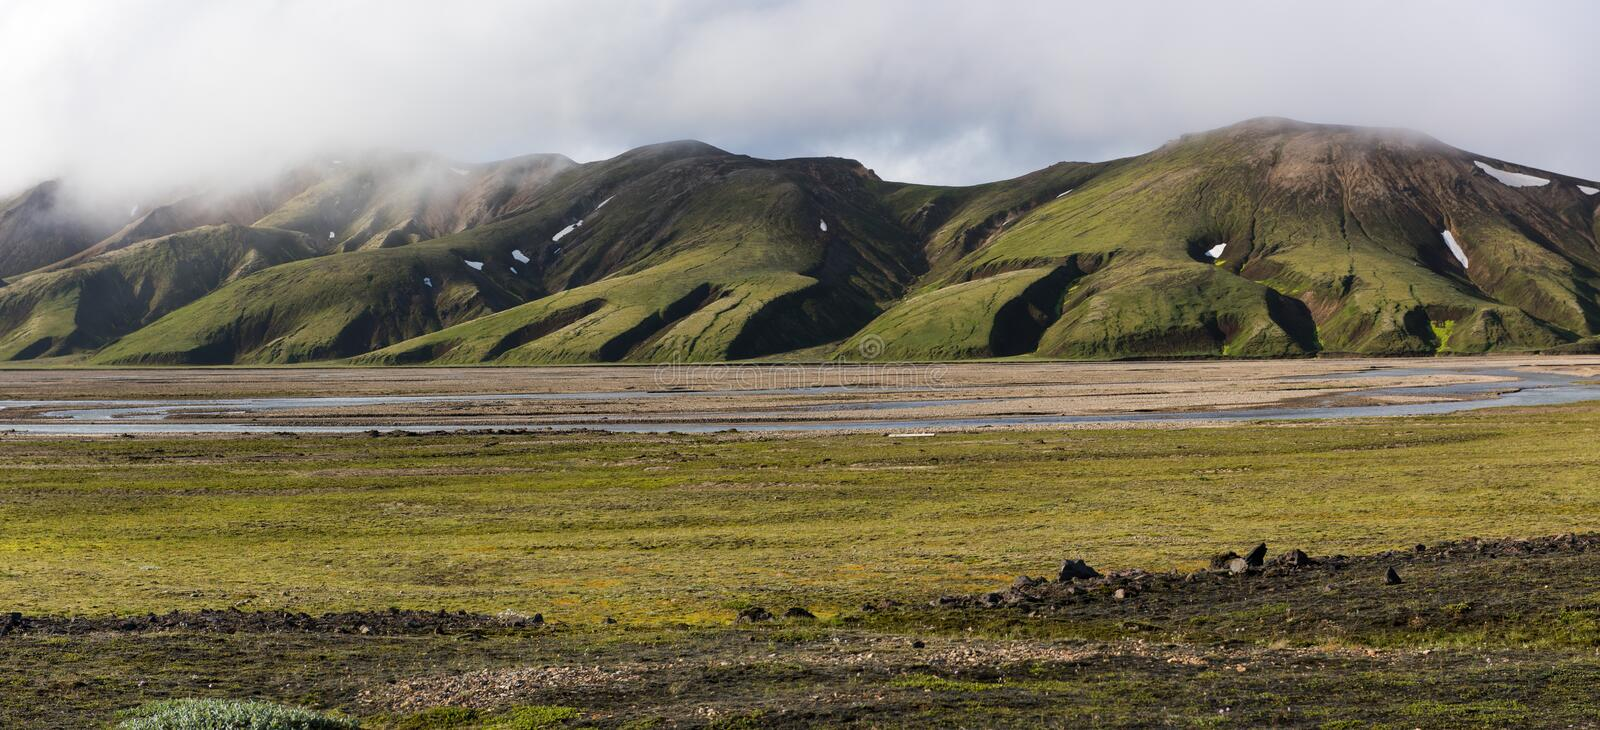 Icelandic highlands royalty free stock photo